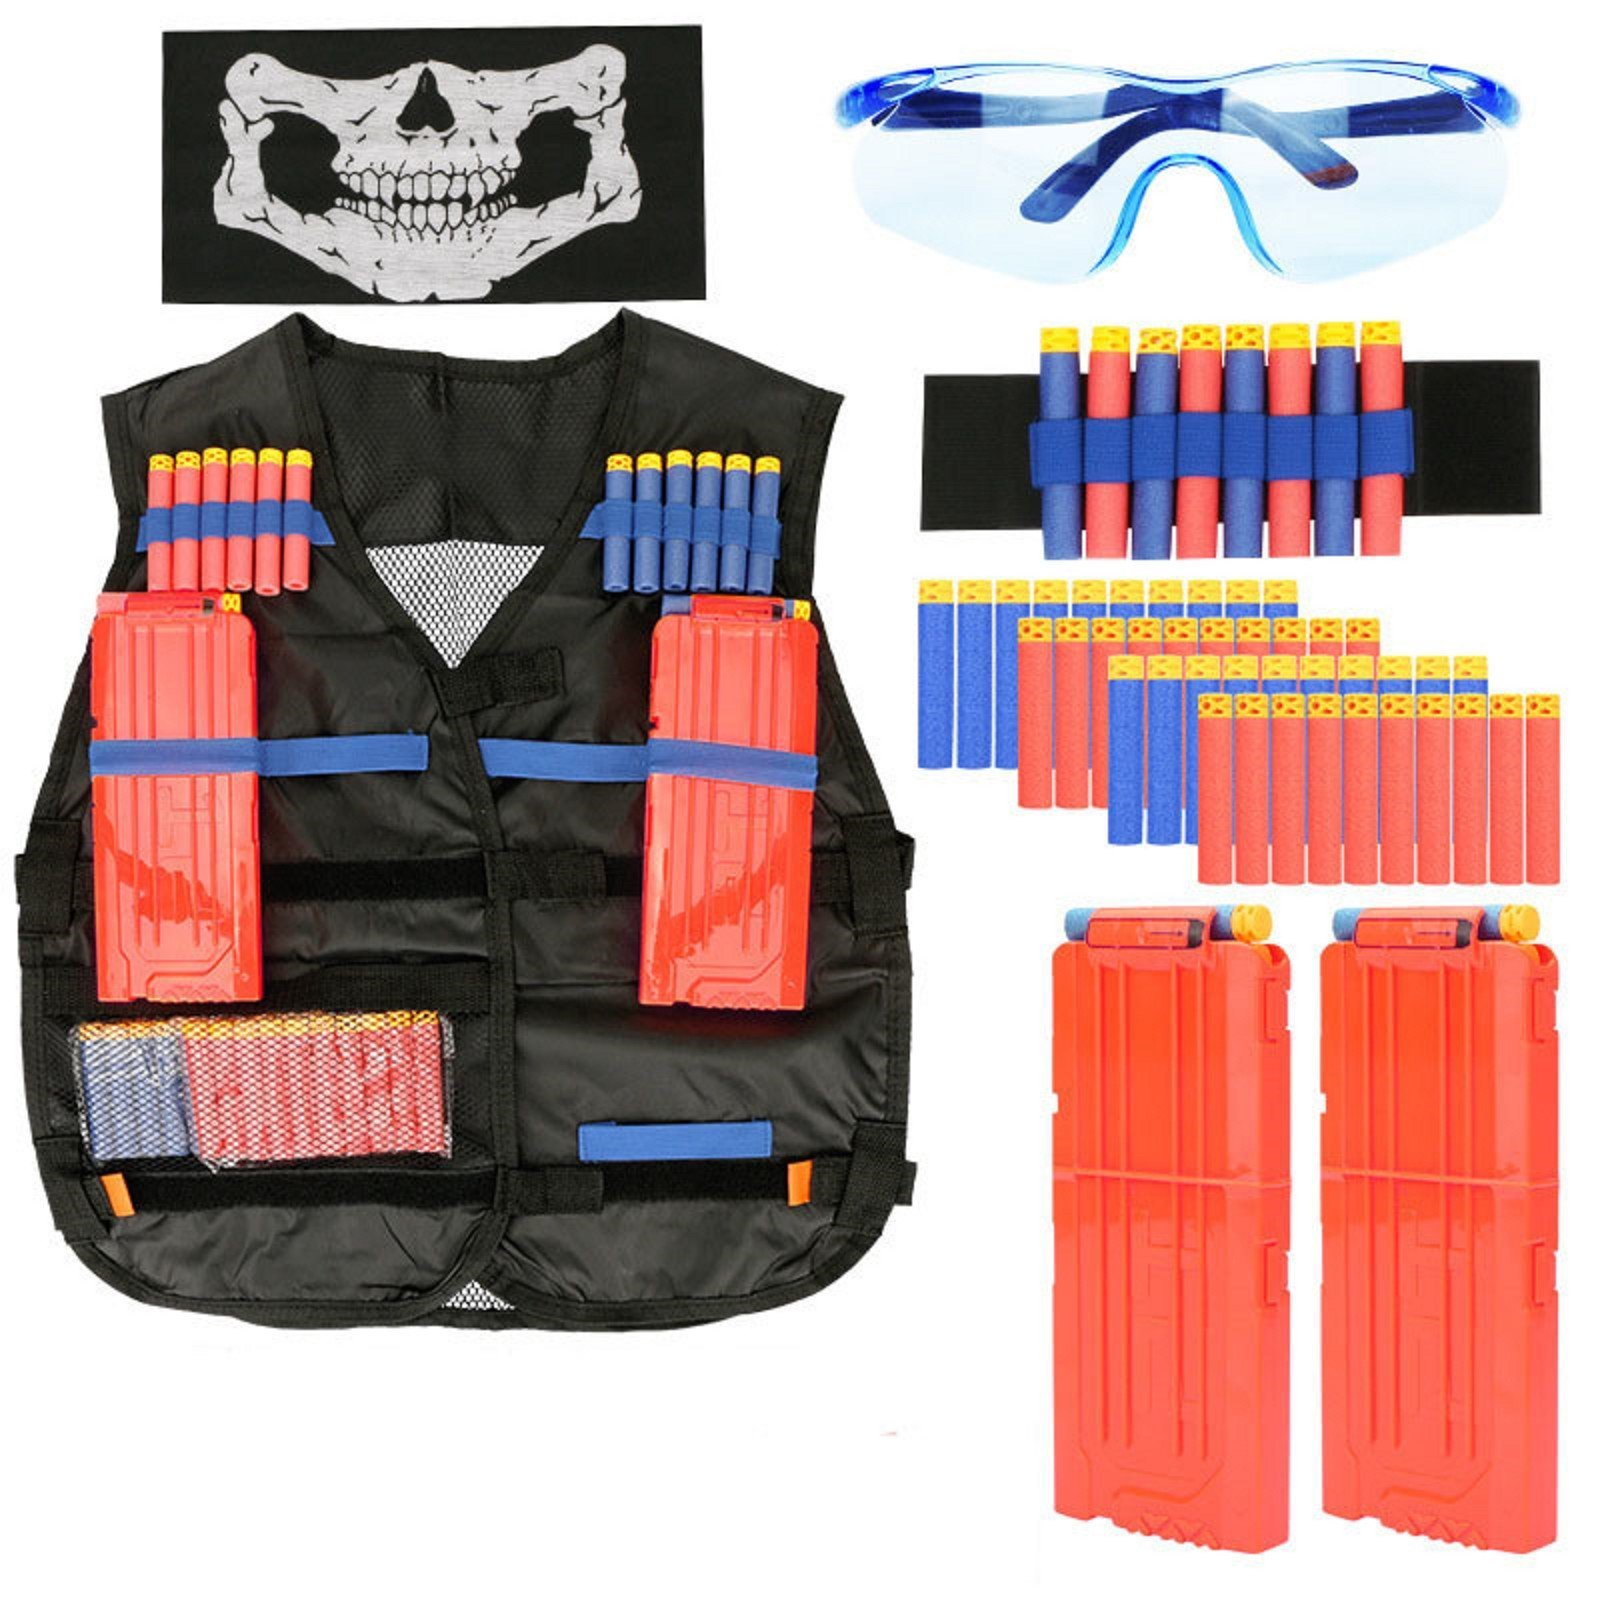 MZS Tec Children's Tactical Vest with Gun Attack Elite CS Hunting Accessories Outdoor Equipment Suit for Nerf N-strike (Black)